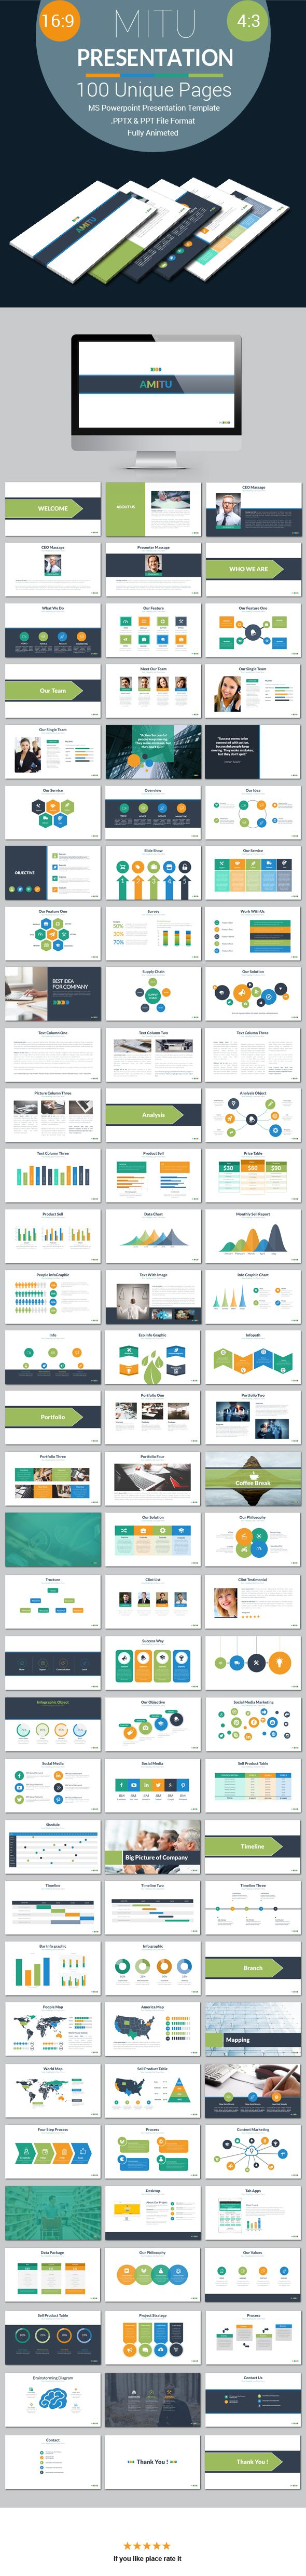 Mitu - Powerpoint Presentation Template